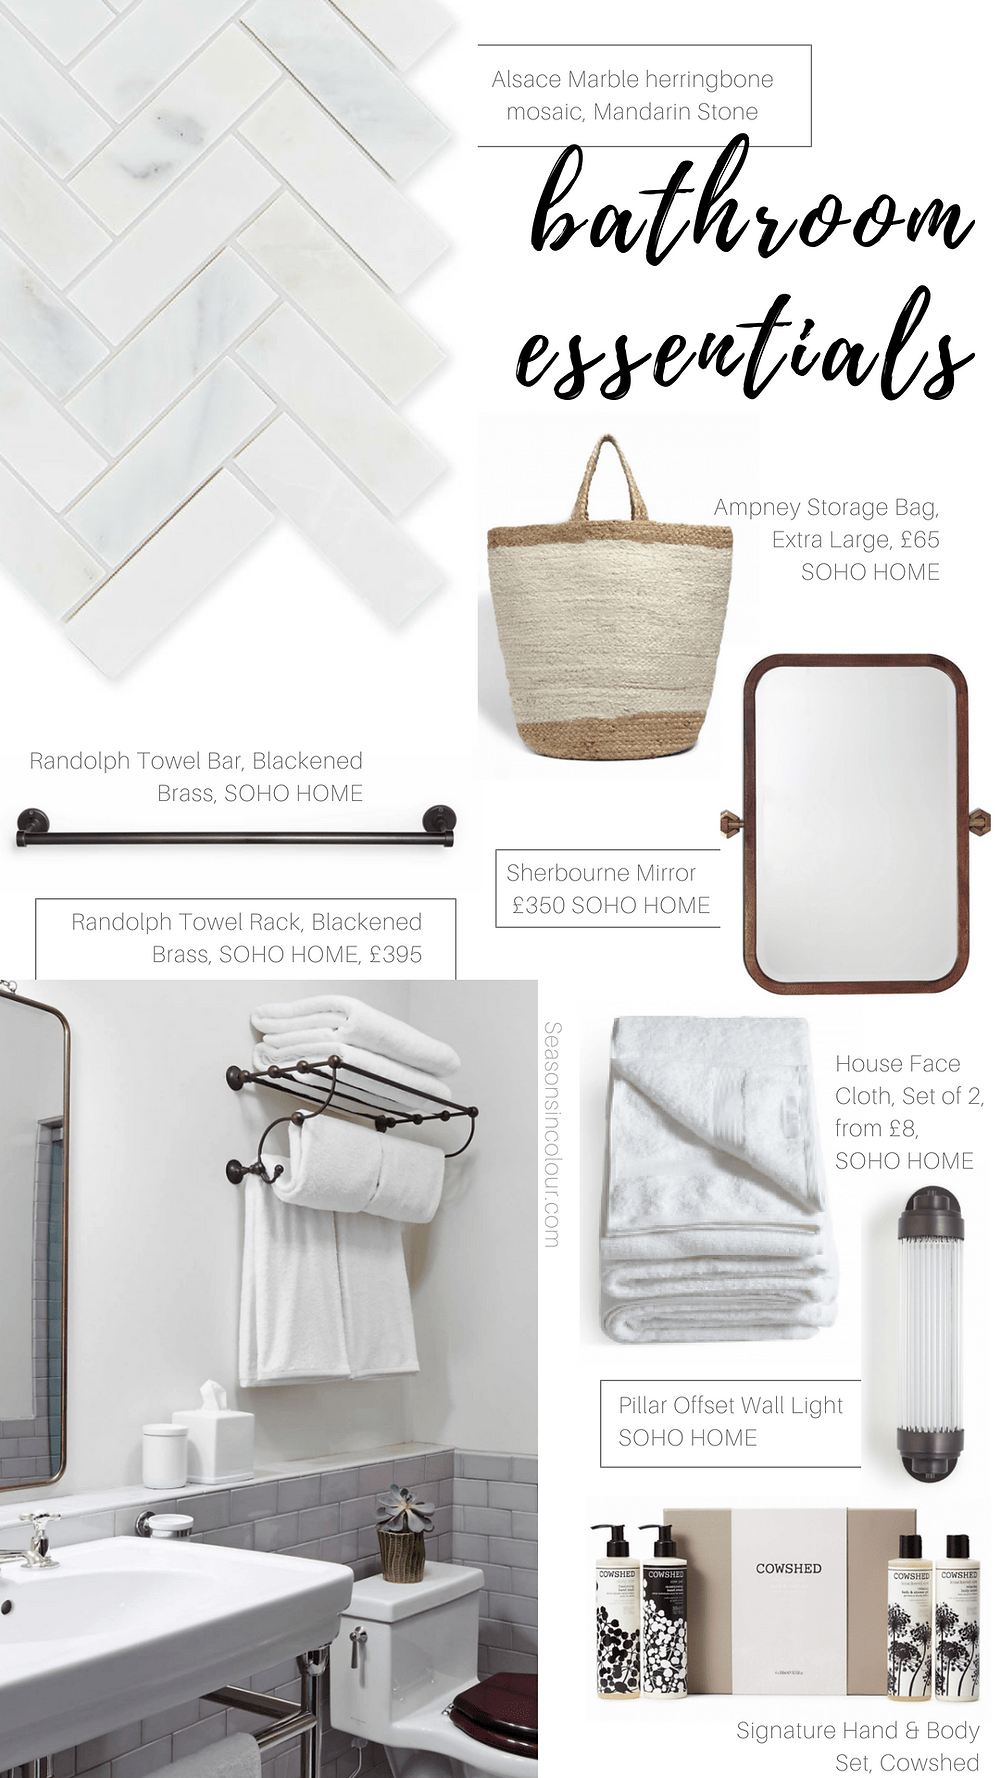 bathroom essentials look with black accents, marble herringbone tiles, the sHERBOURNE mirror from Soho Home